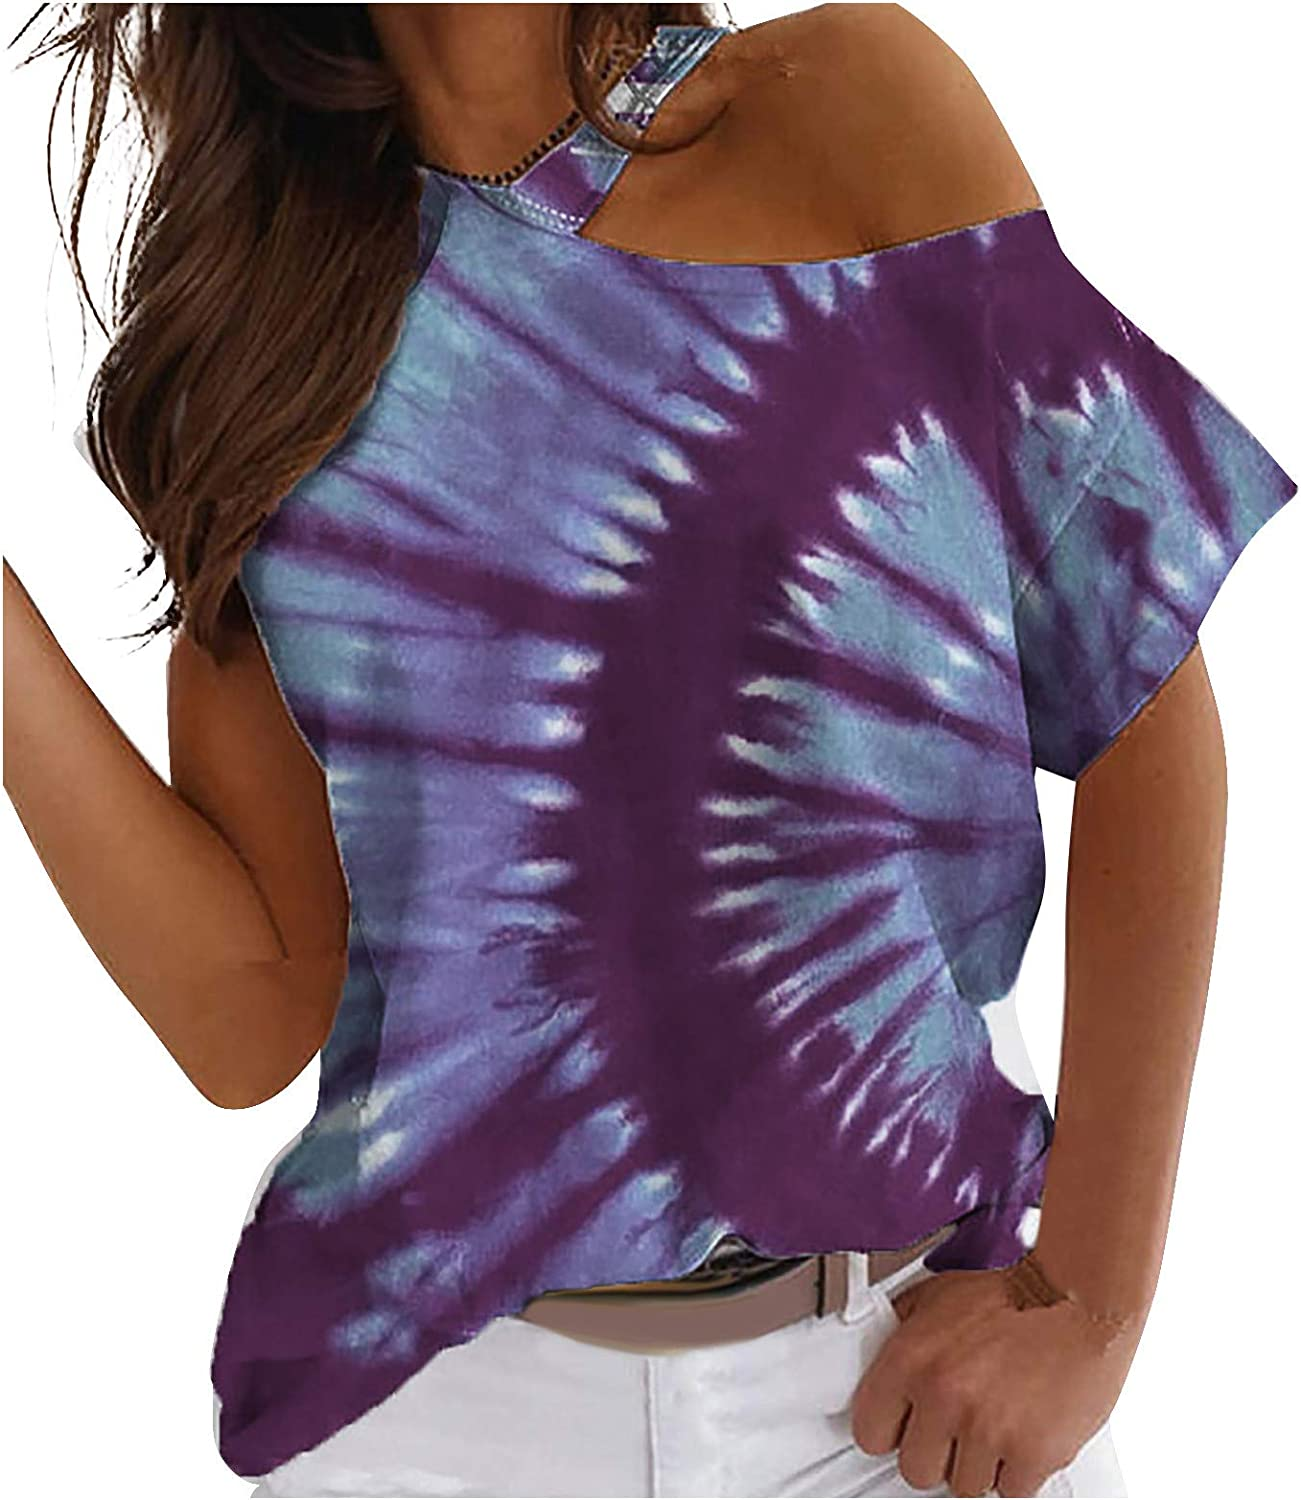 Women's Tie Dye Tshirts Off Shoulder Tops Short Sleeve Hippie Clothes Stylish Shirts for Women